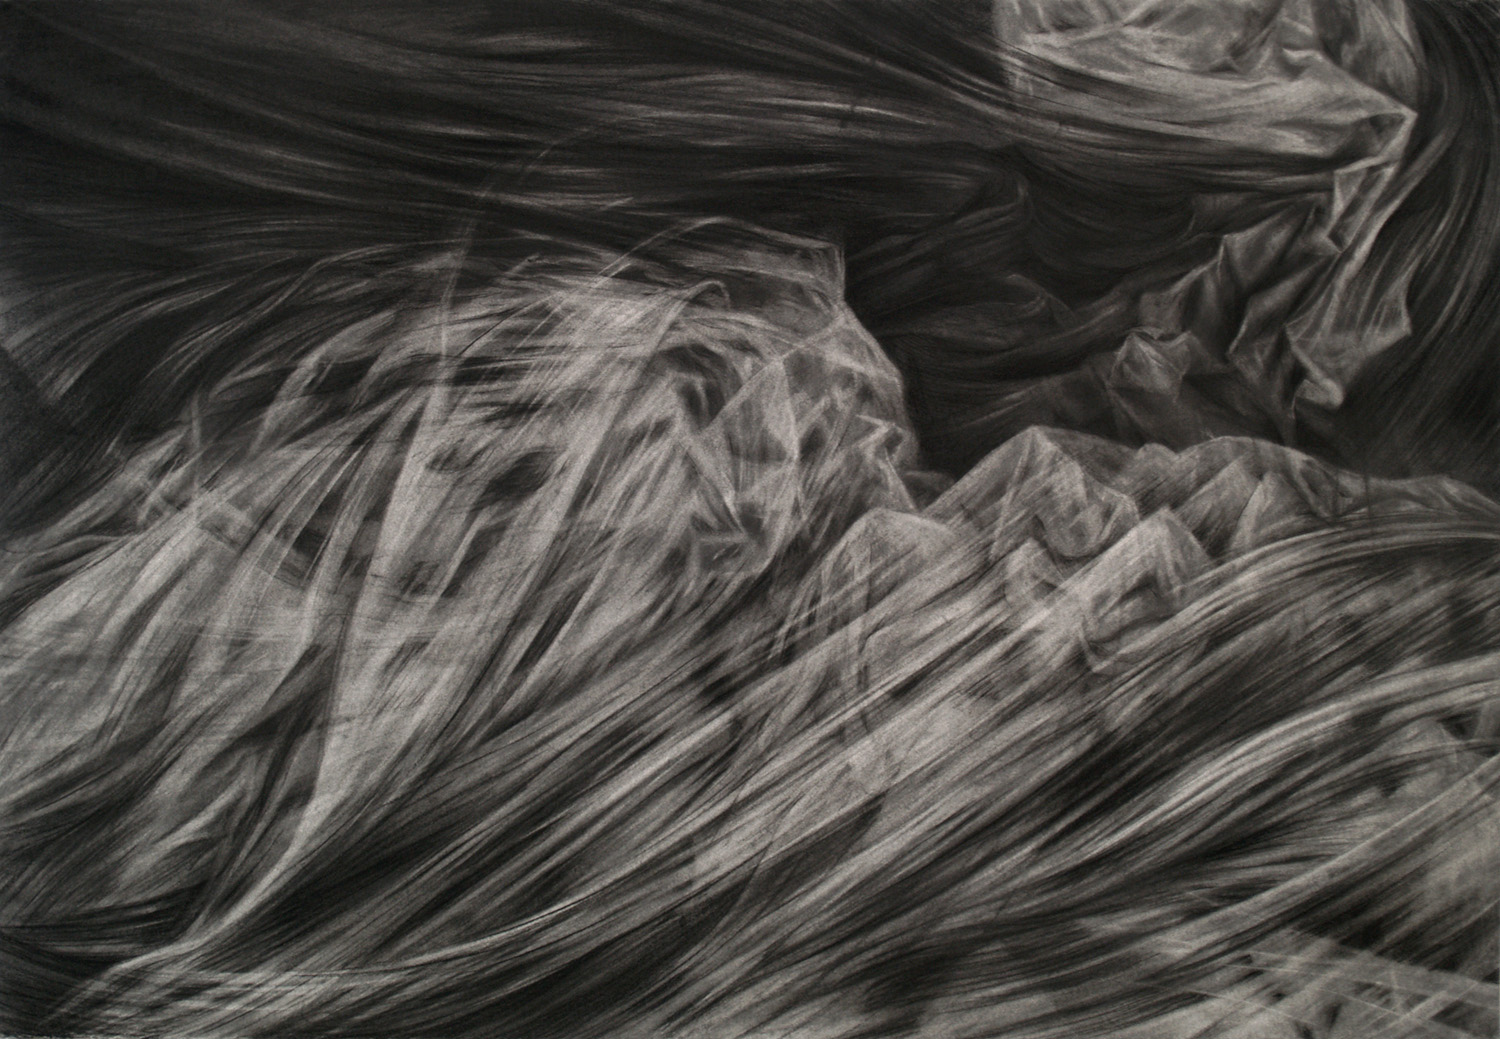 Shift, charcoal and graphite, 76 x 102 cm, 2012